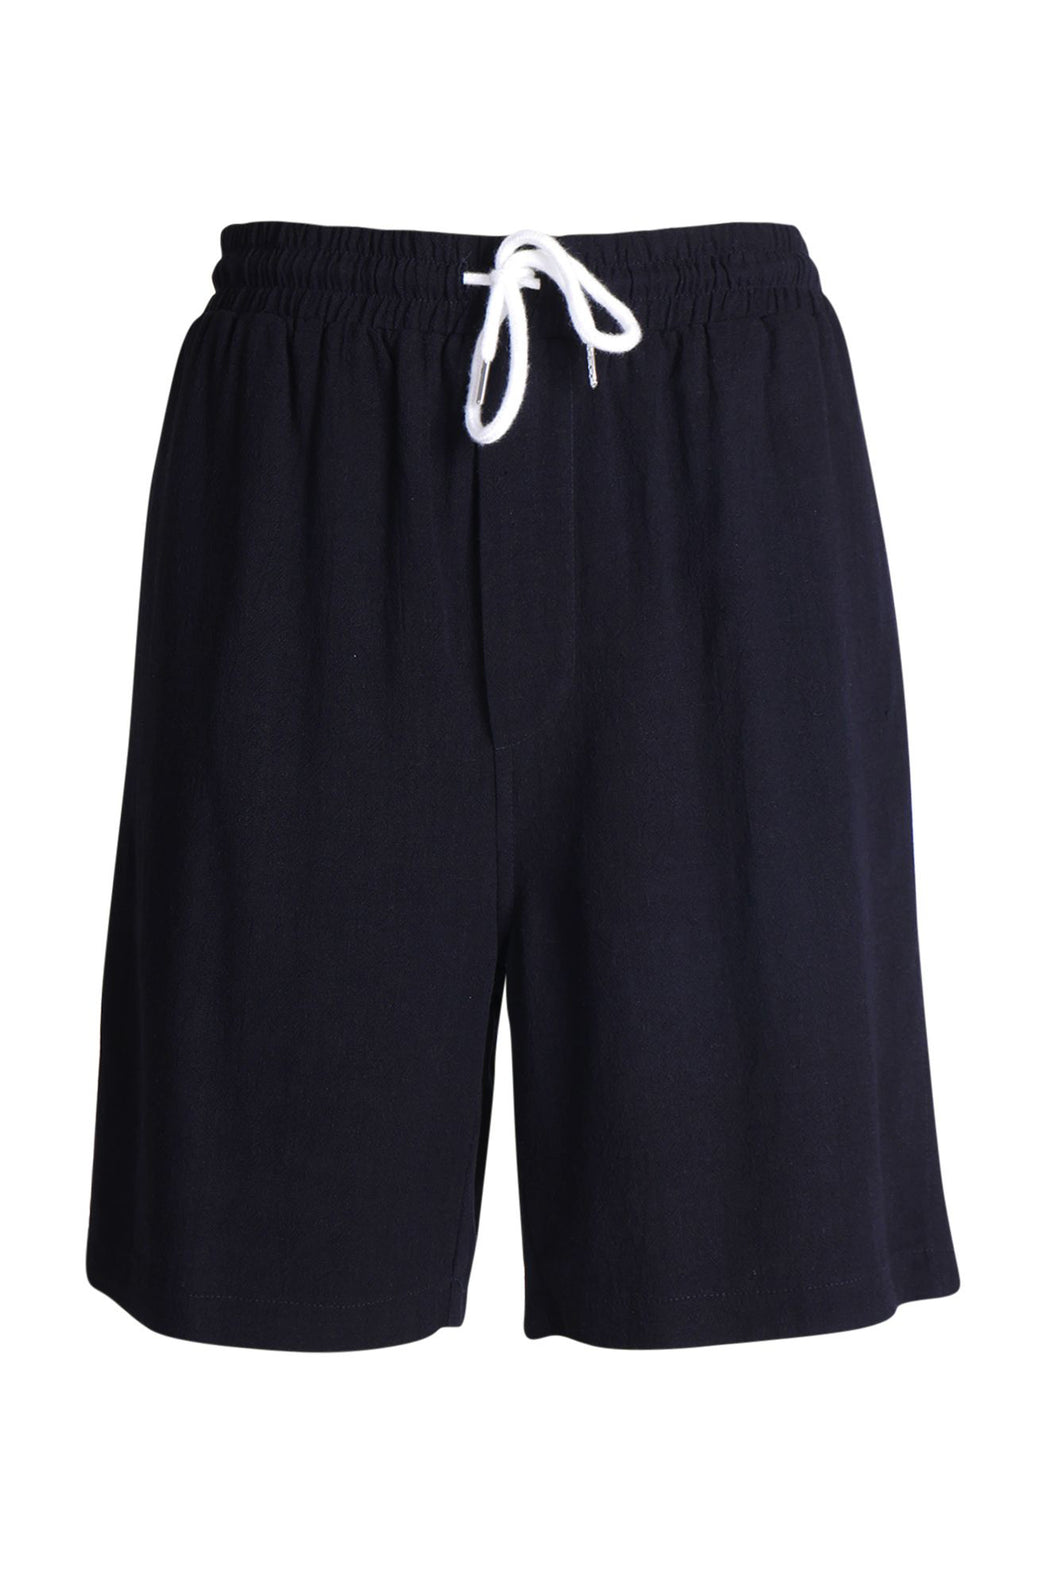 Ketz-ke Nostalgia Short - Black | Shop Ketz-ke at Wallace & Gibbs NZ